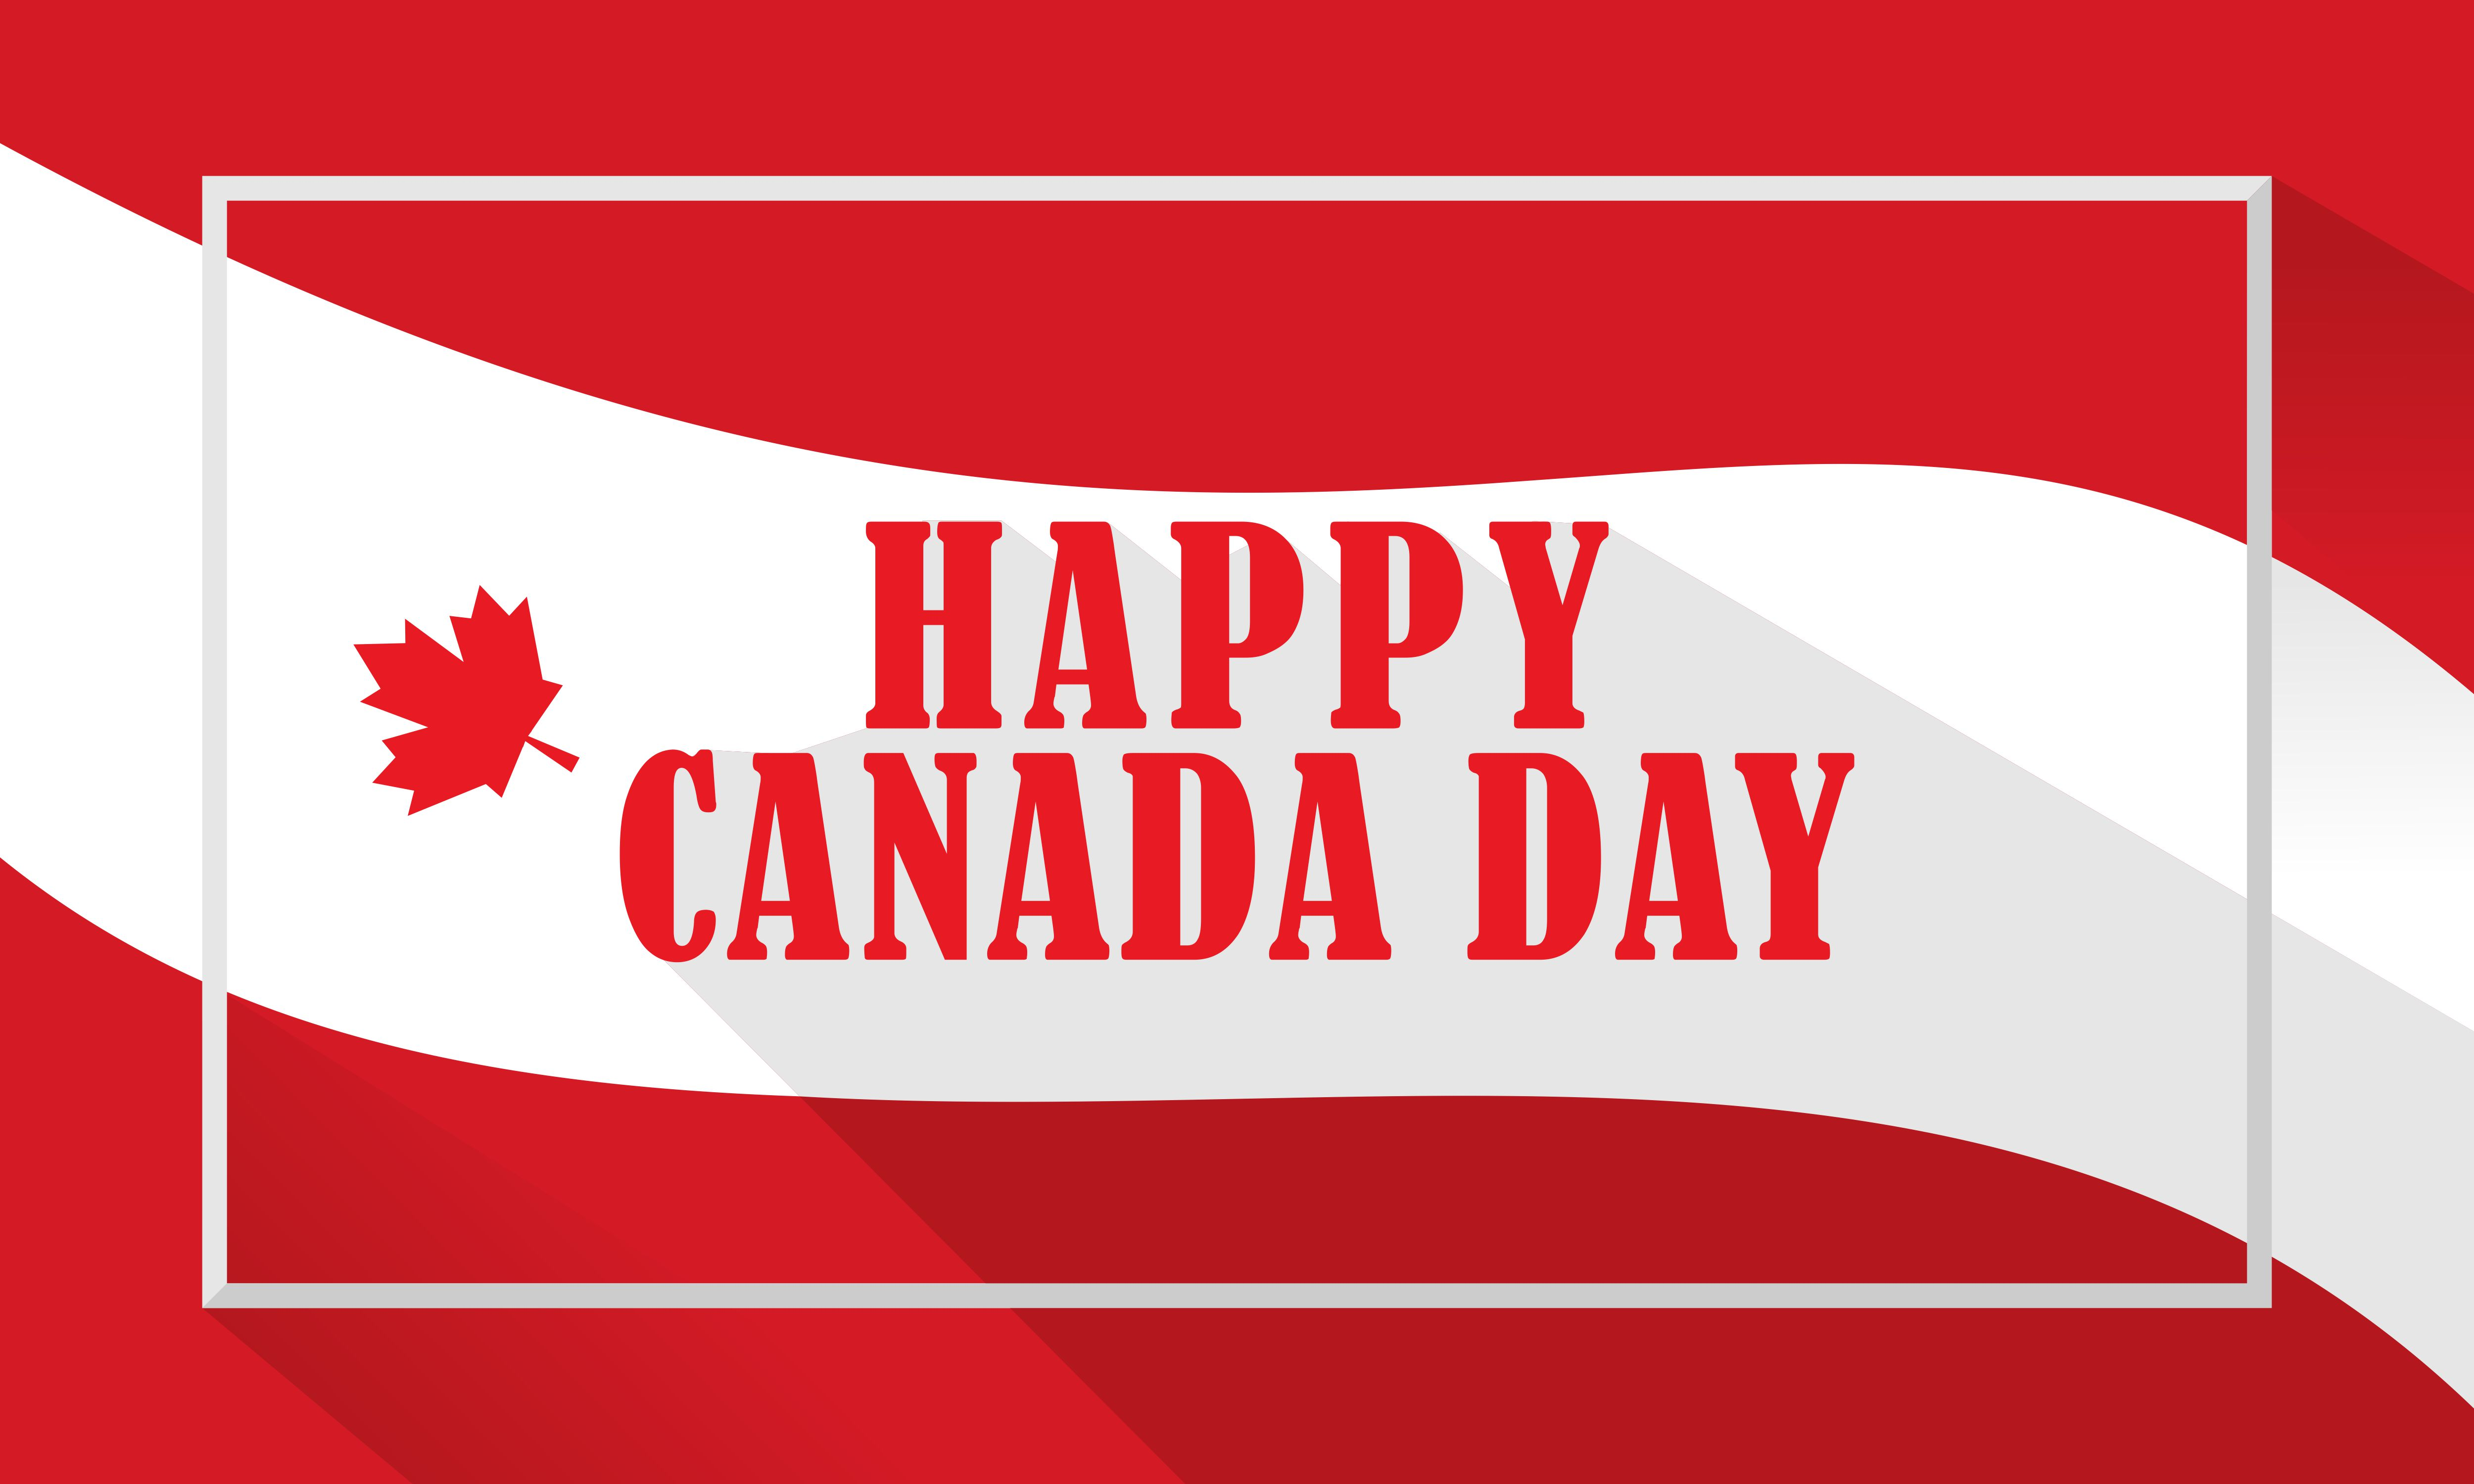 Download Free Celebration Canada Day Background Logo Graphic By Deemka Studio for Cricut Explore, Silhouette and other cutting machines.